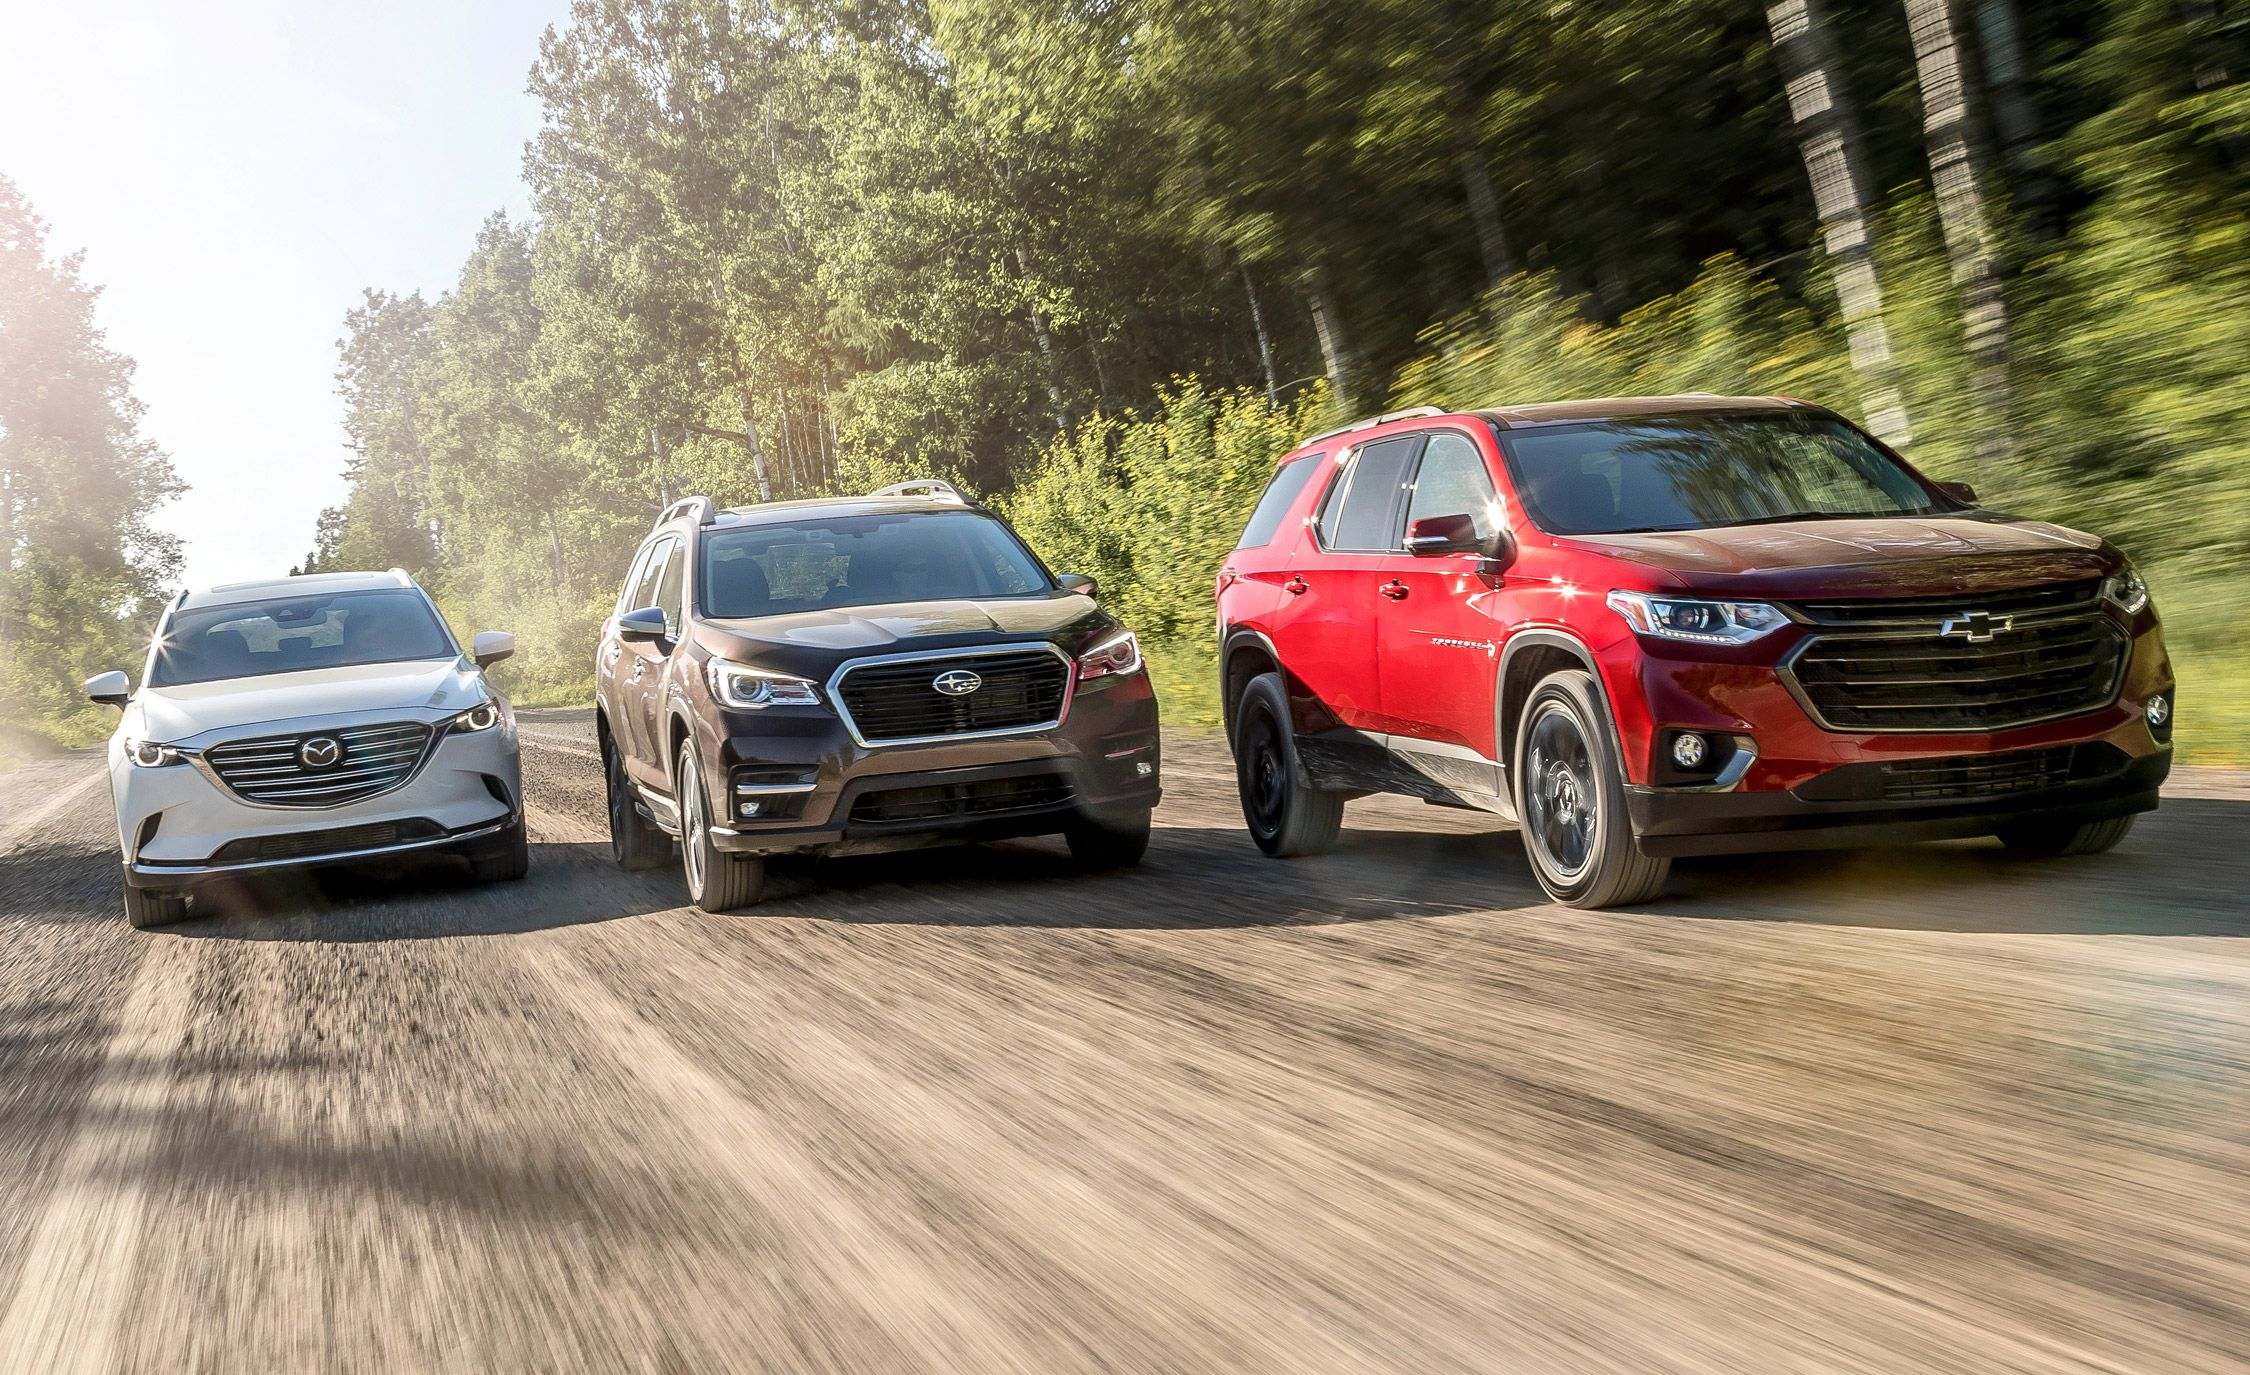 Three Row Suvs Compared Subaru Ascent And Chevrolet Traverse Take On Our Reigning Champ